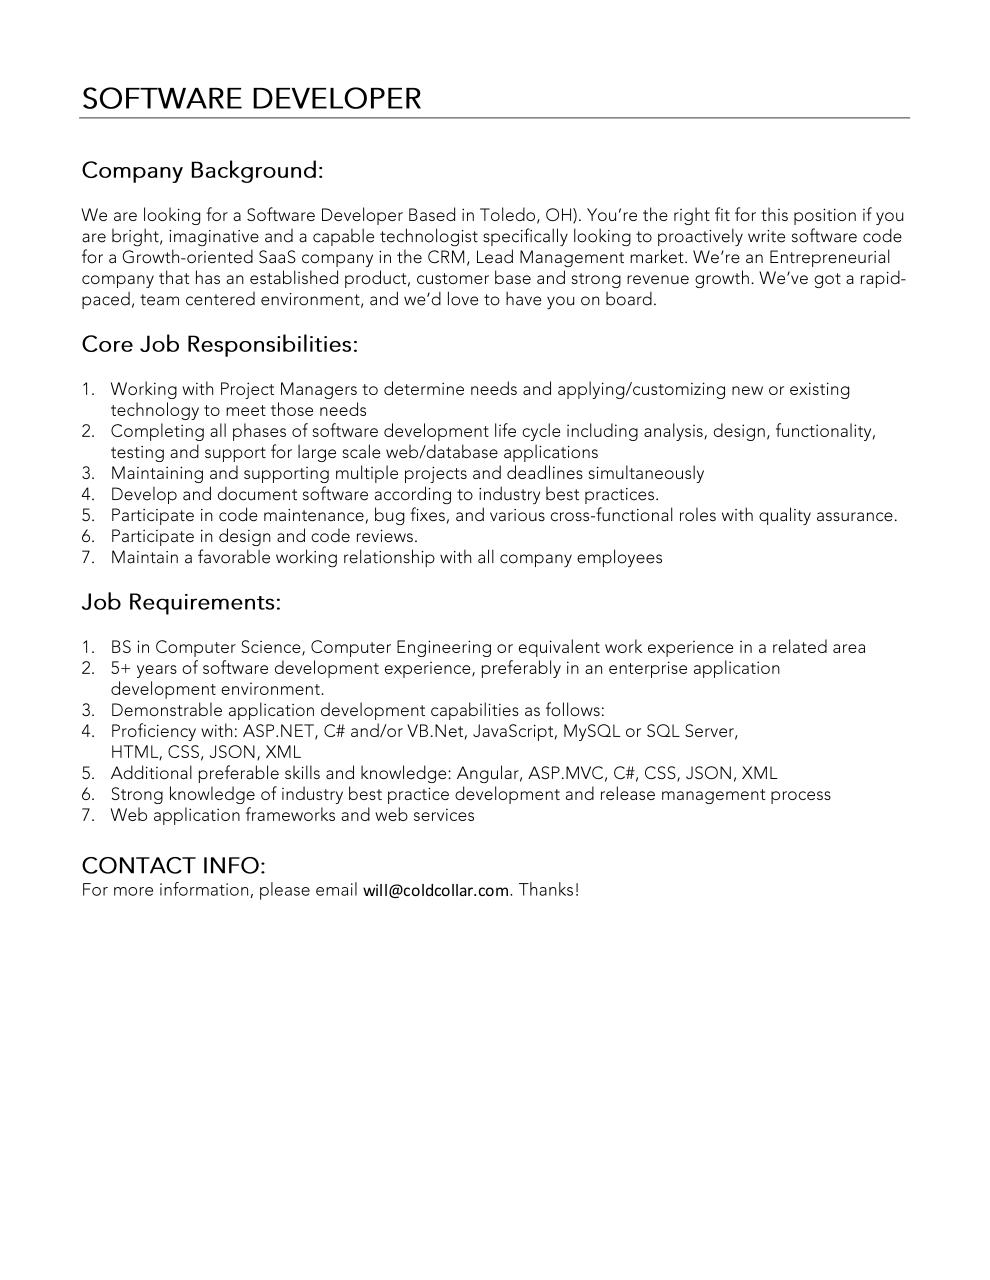 Amazing Document Preview Software Developer Job Description.pdf   Page 1/1